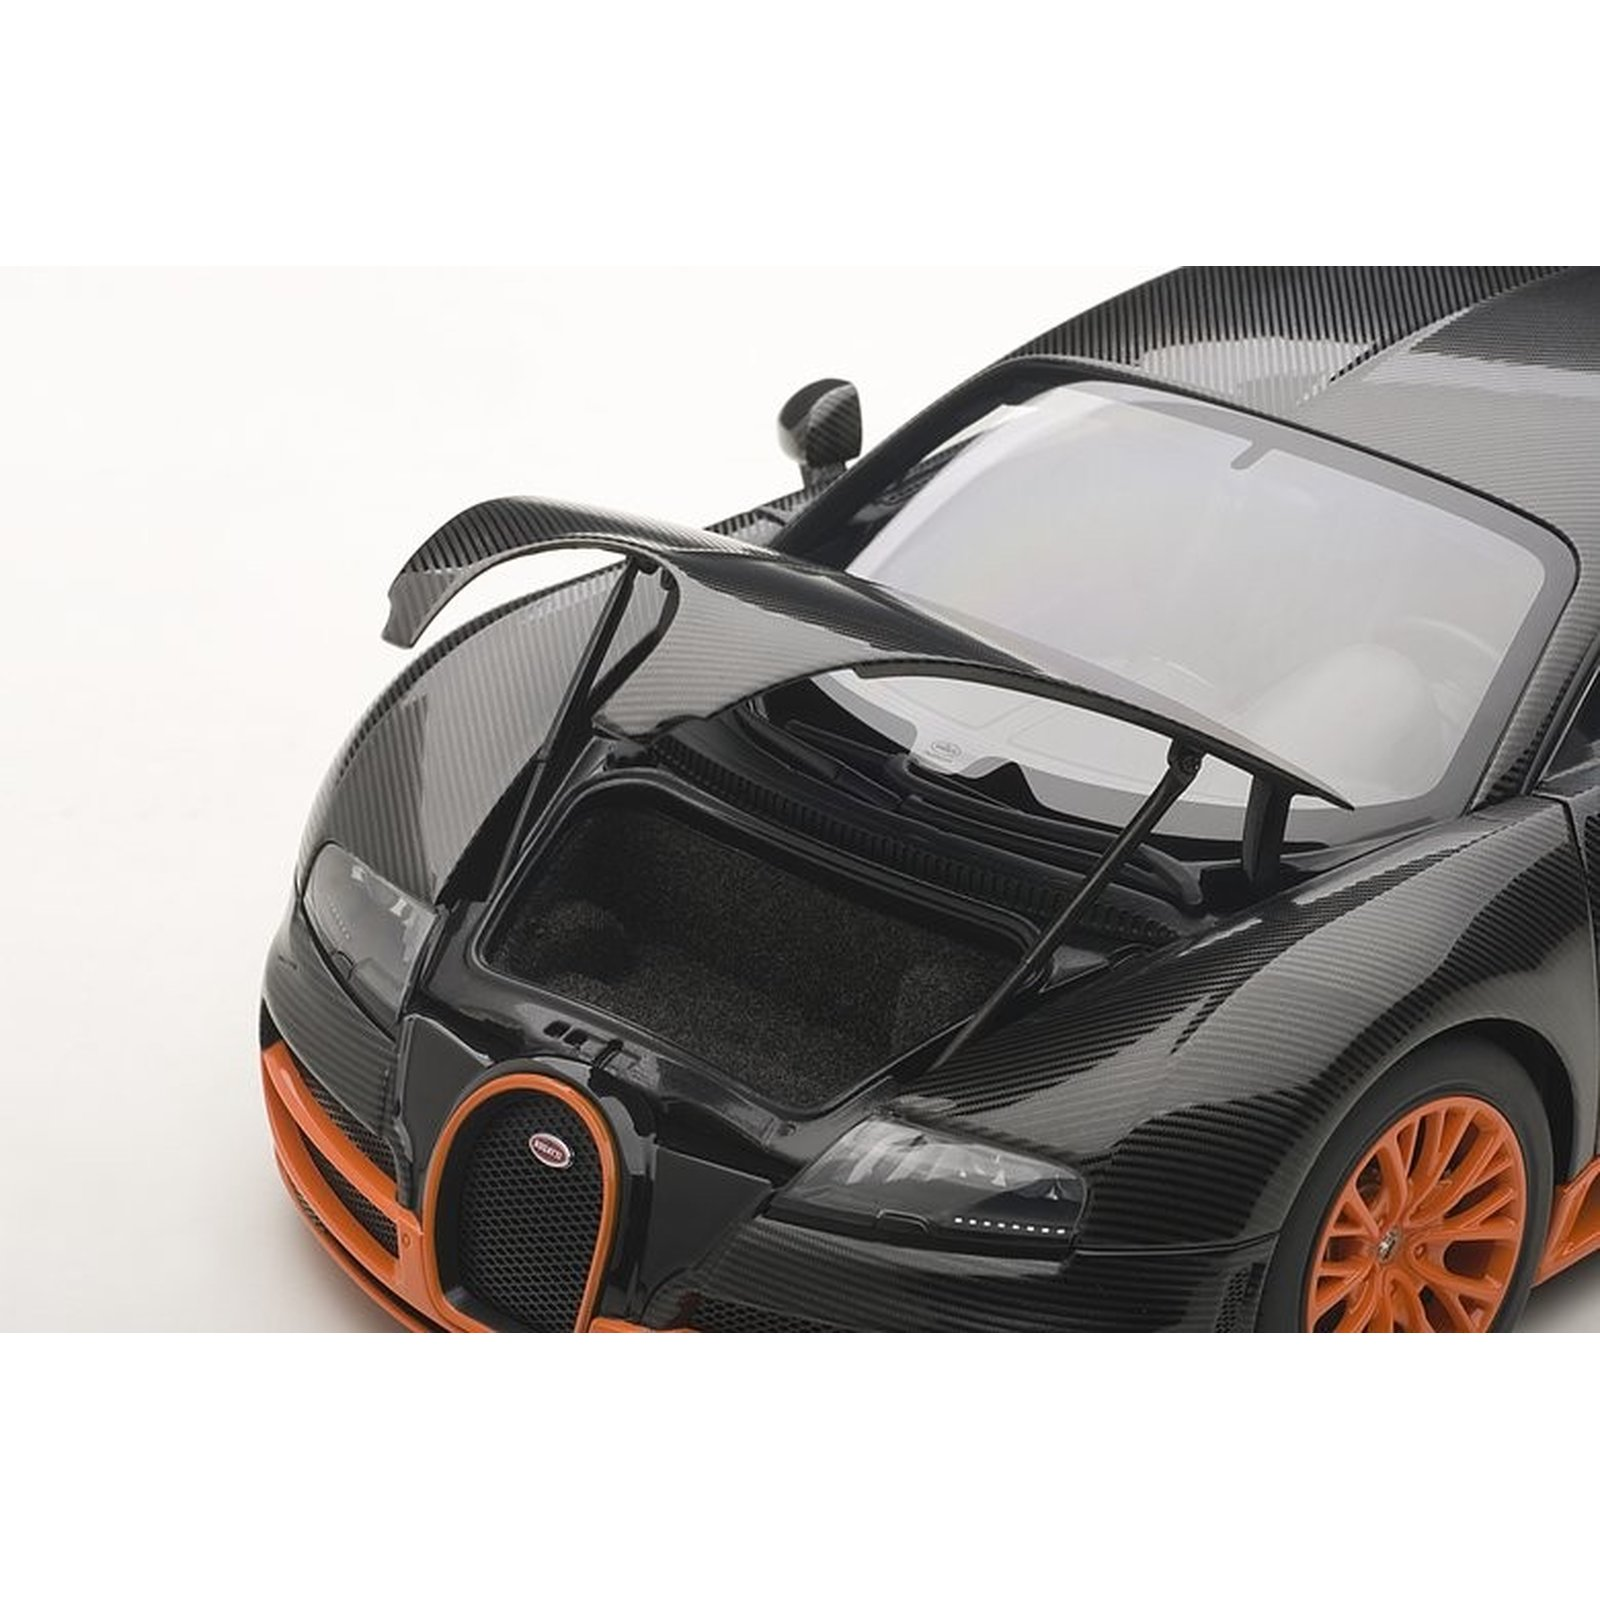 autoart 70936 bugatti veyron super sport 2010 massstab 1 18. Black Bedroom Furniture Sets. Home Design Ideas